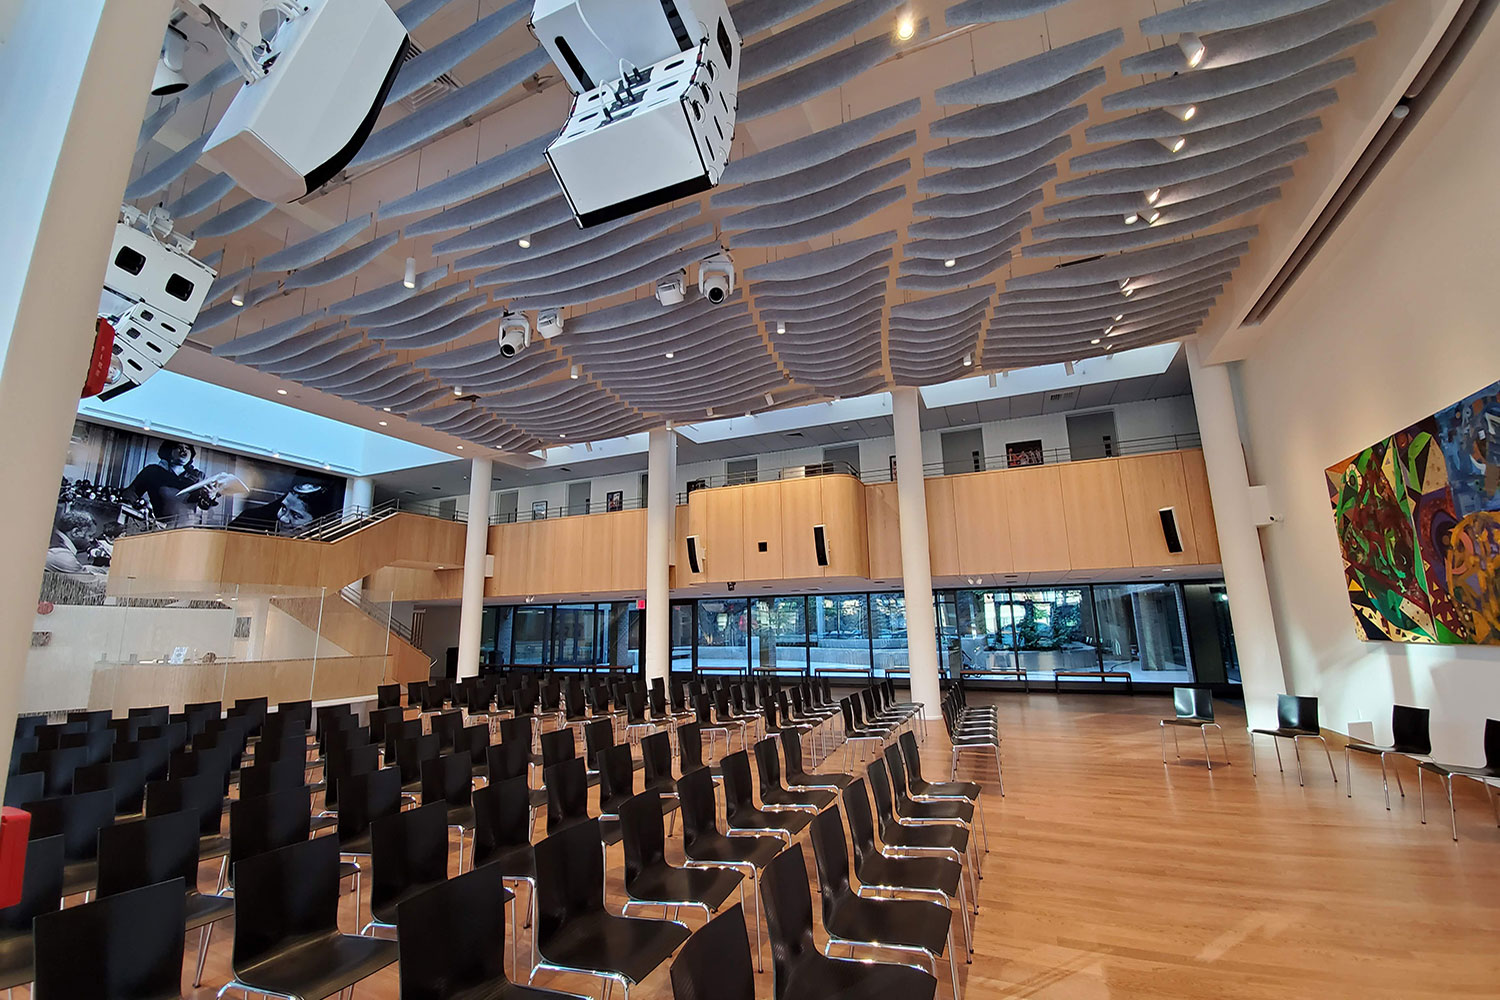 Harlem School of The Arts Herb Alpert Center upgraded performance venue designed by WSDG and featured at the New York Times. Dorothy Maynor Hall. Acoustics by WSDG.